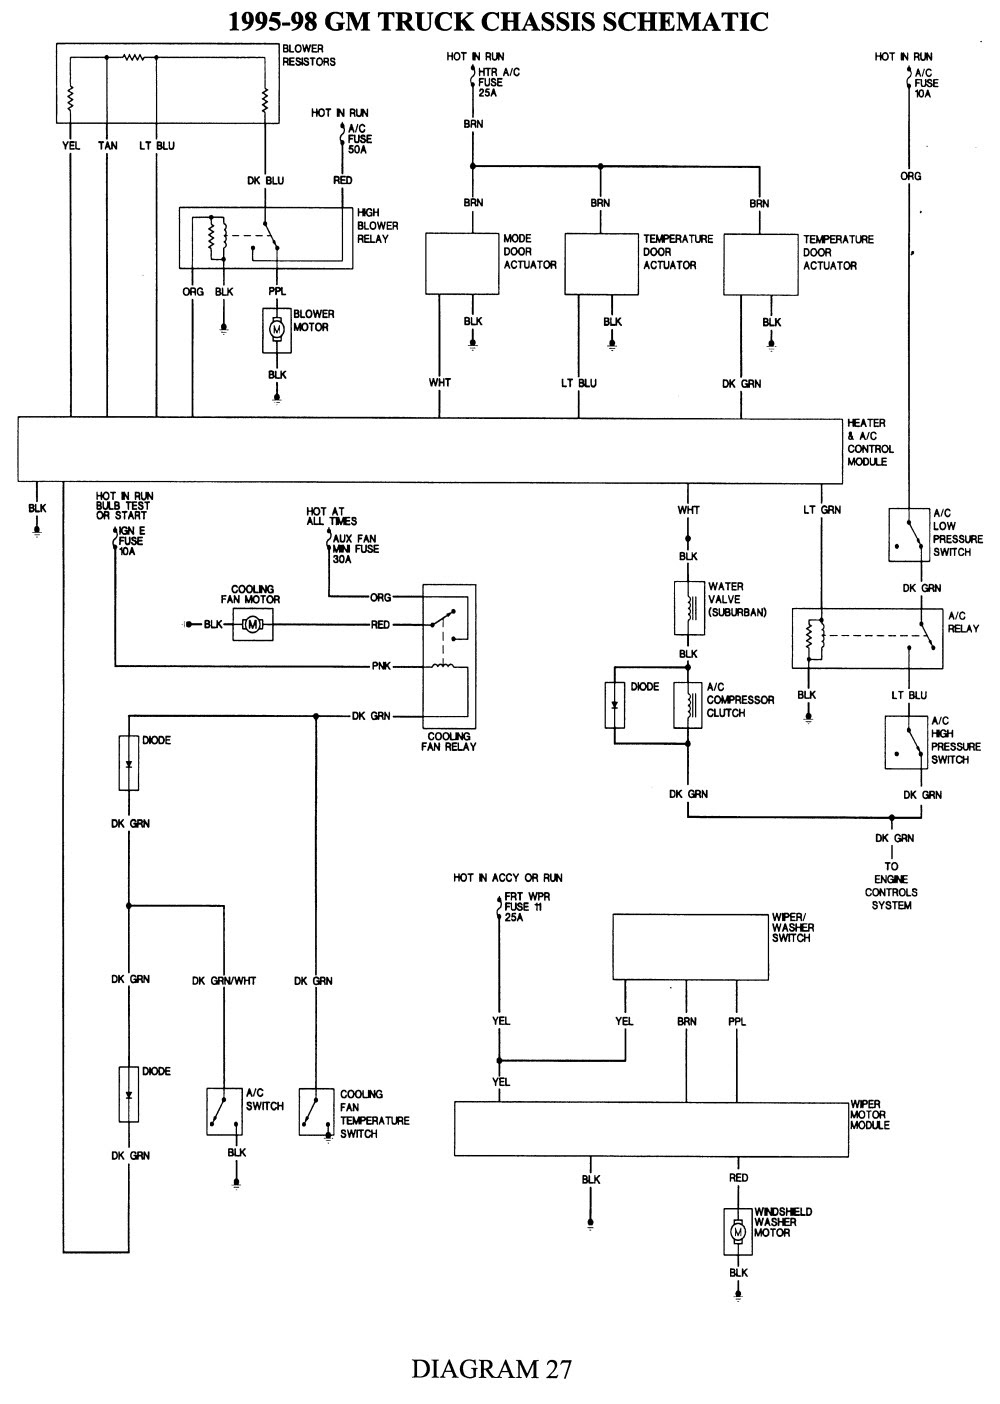 DIAGRAM] 1988 Gmc Truck Wiring Diagram Heat FULL Version HD Quality Diagram  Heat - GETDIAGRAMS.COOPERATIVALAFENICE.IT  Cooperativa Fenice